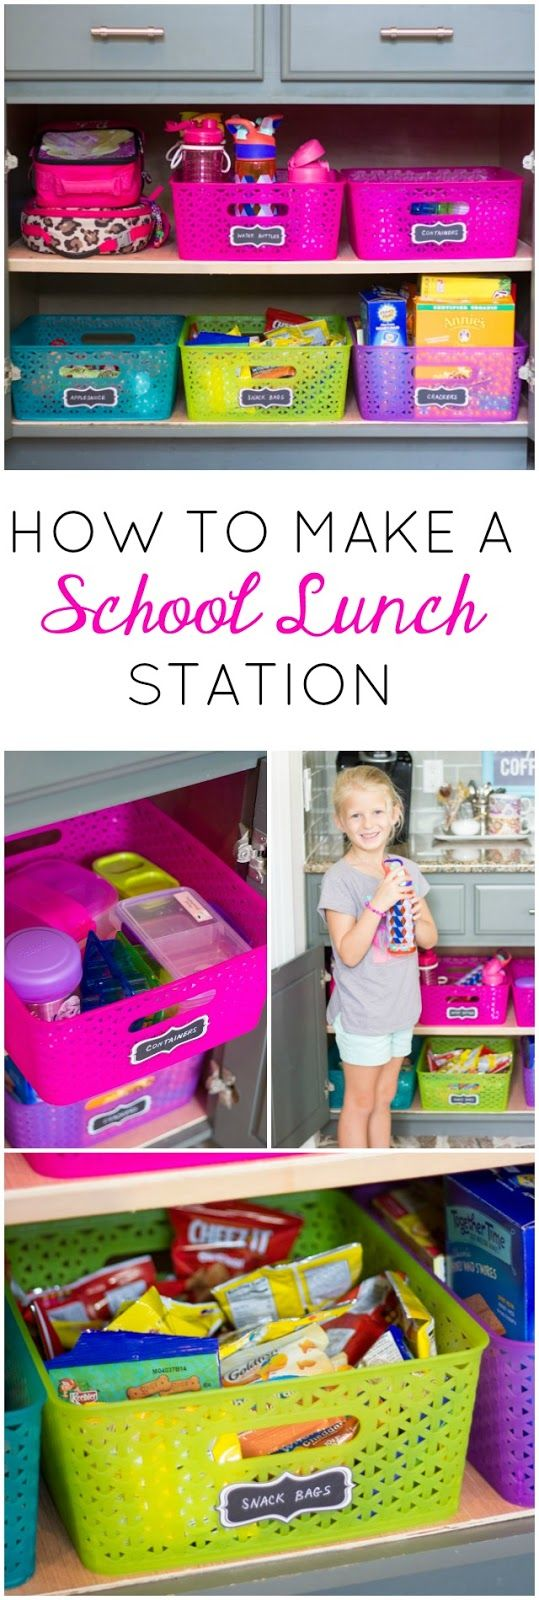 How to make a school lunch station - so helpful for empowering kids to make their own lunches!